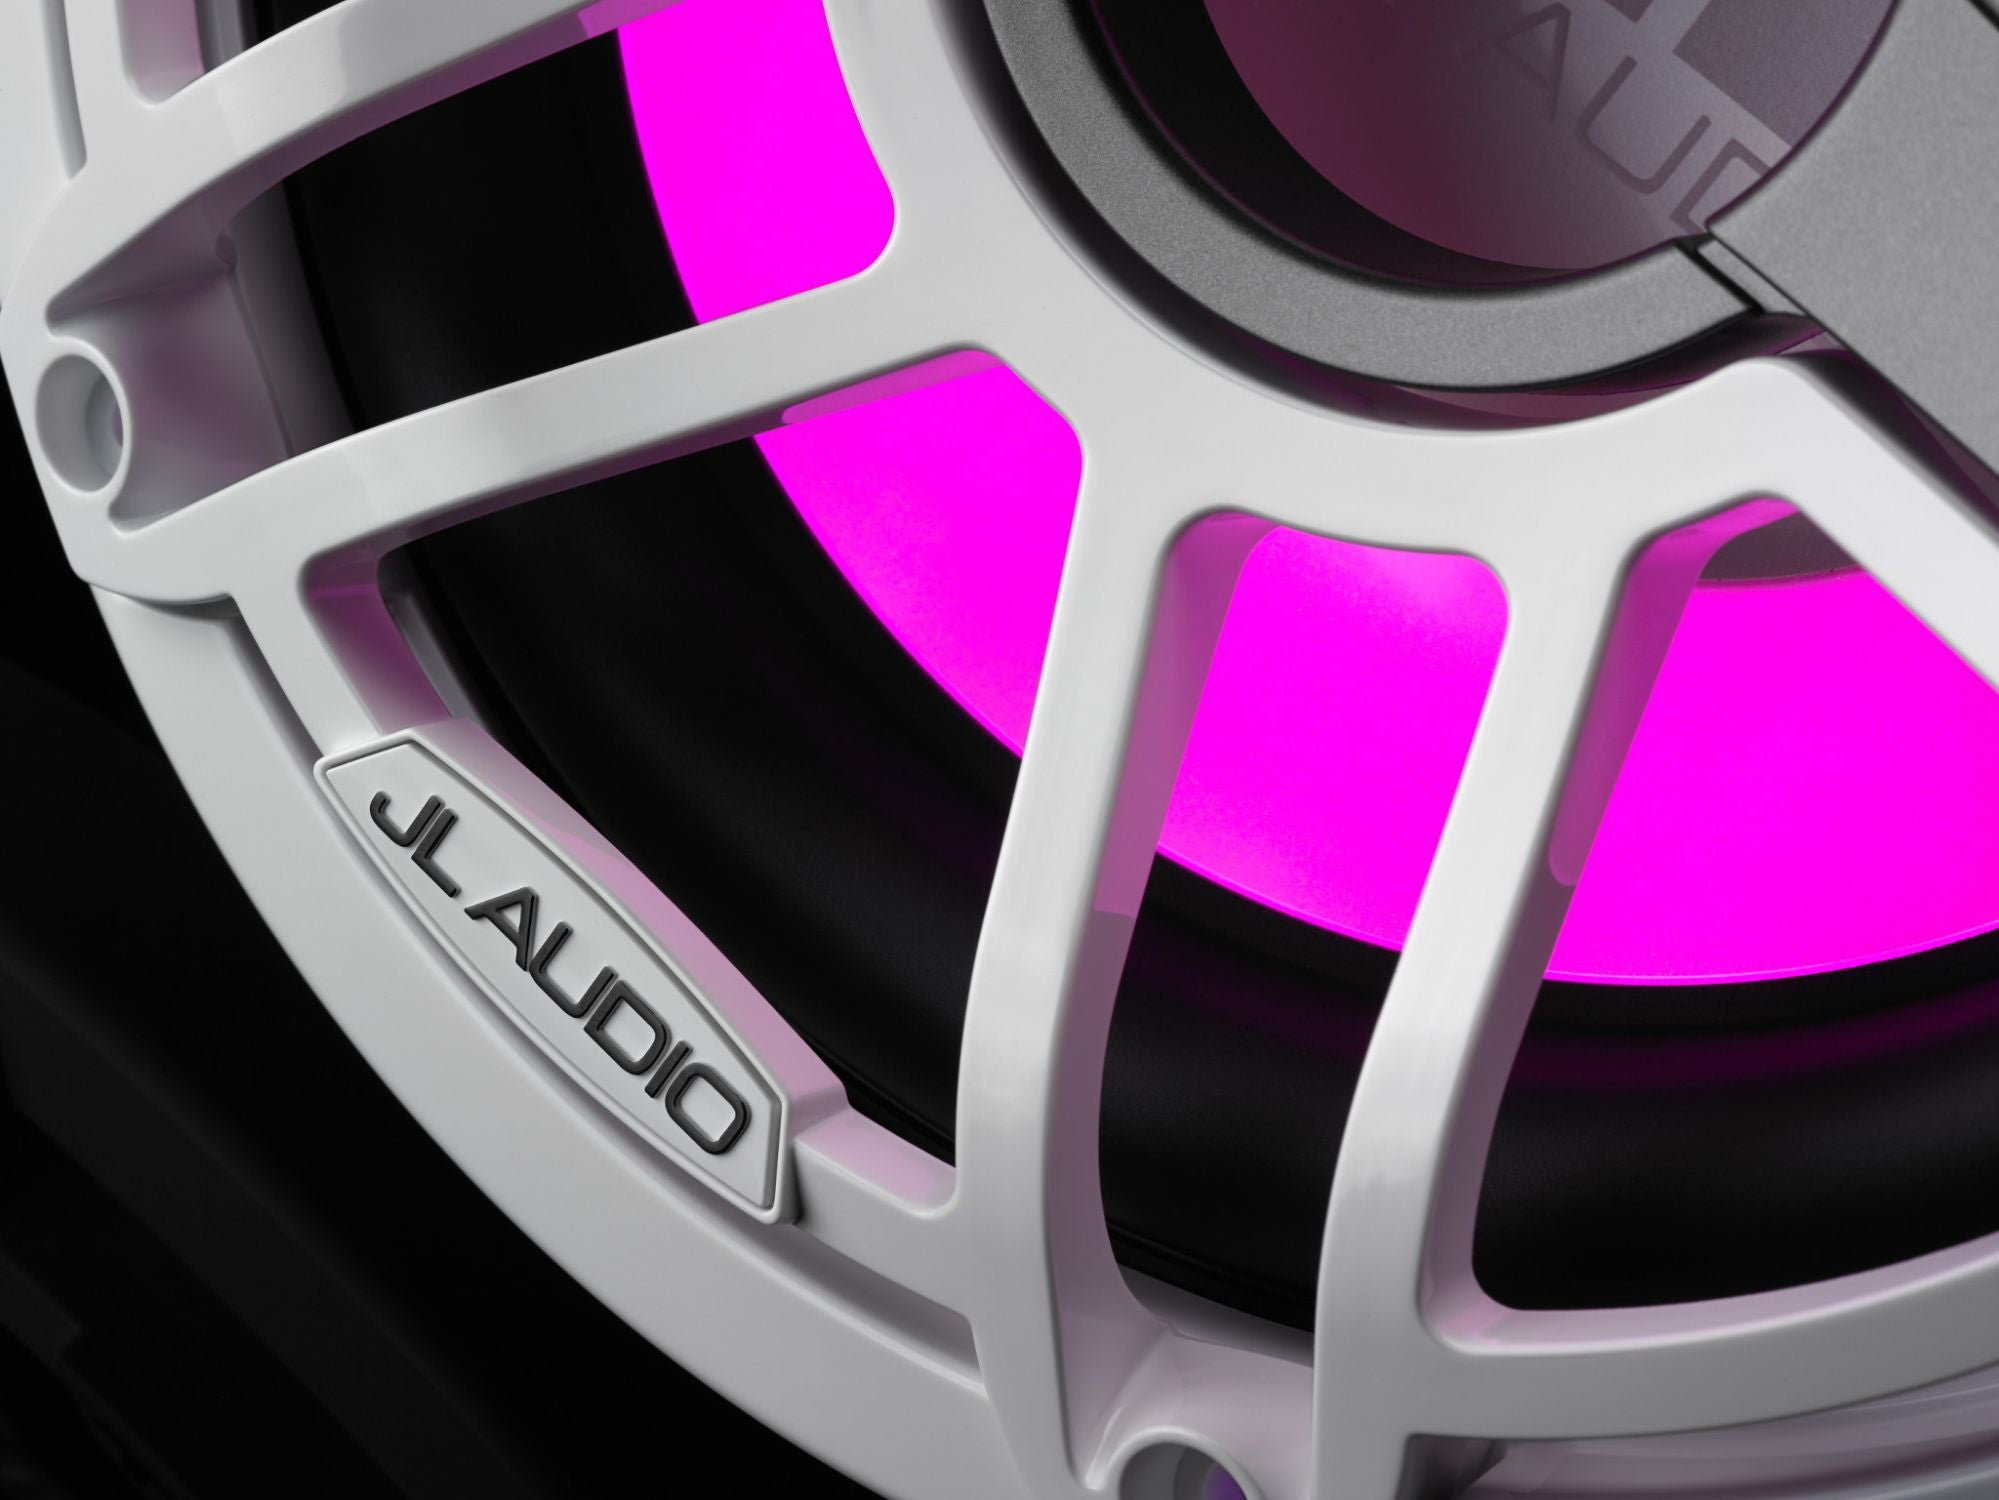 Detail of M6-10W-S-GwGw-i-4 Subwoofer Lit with Pink